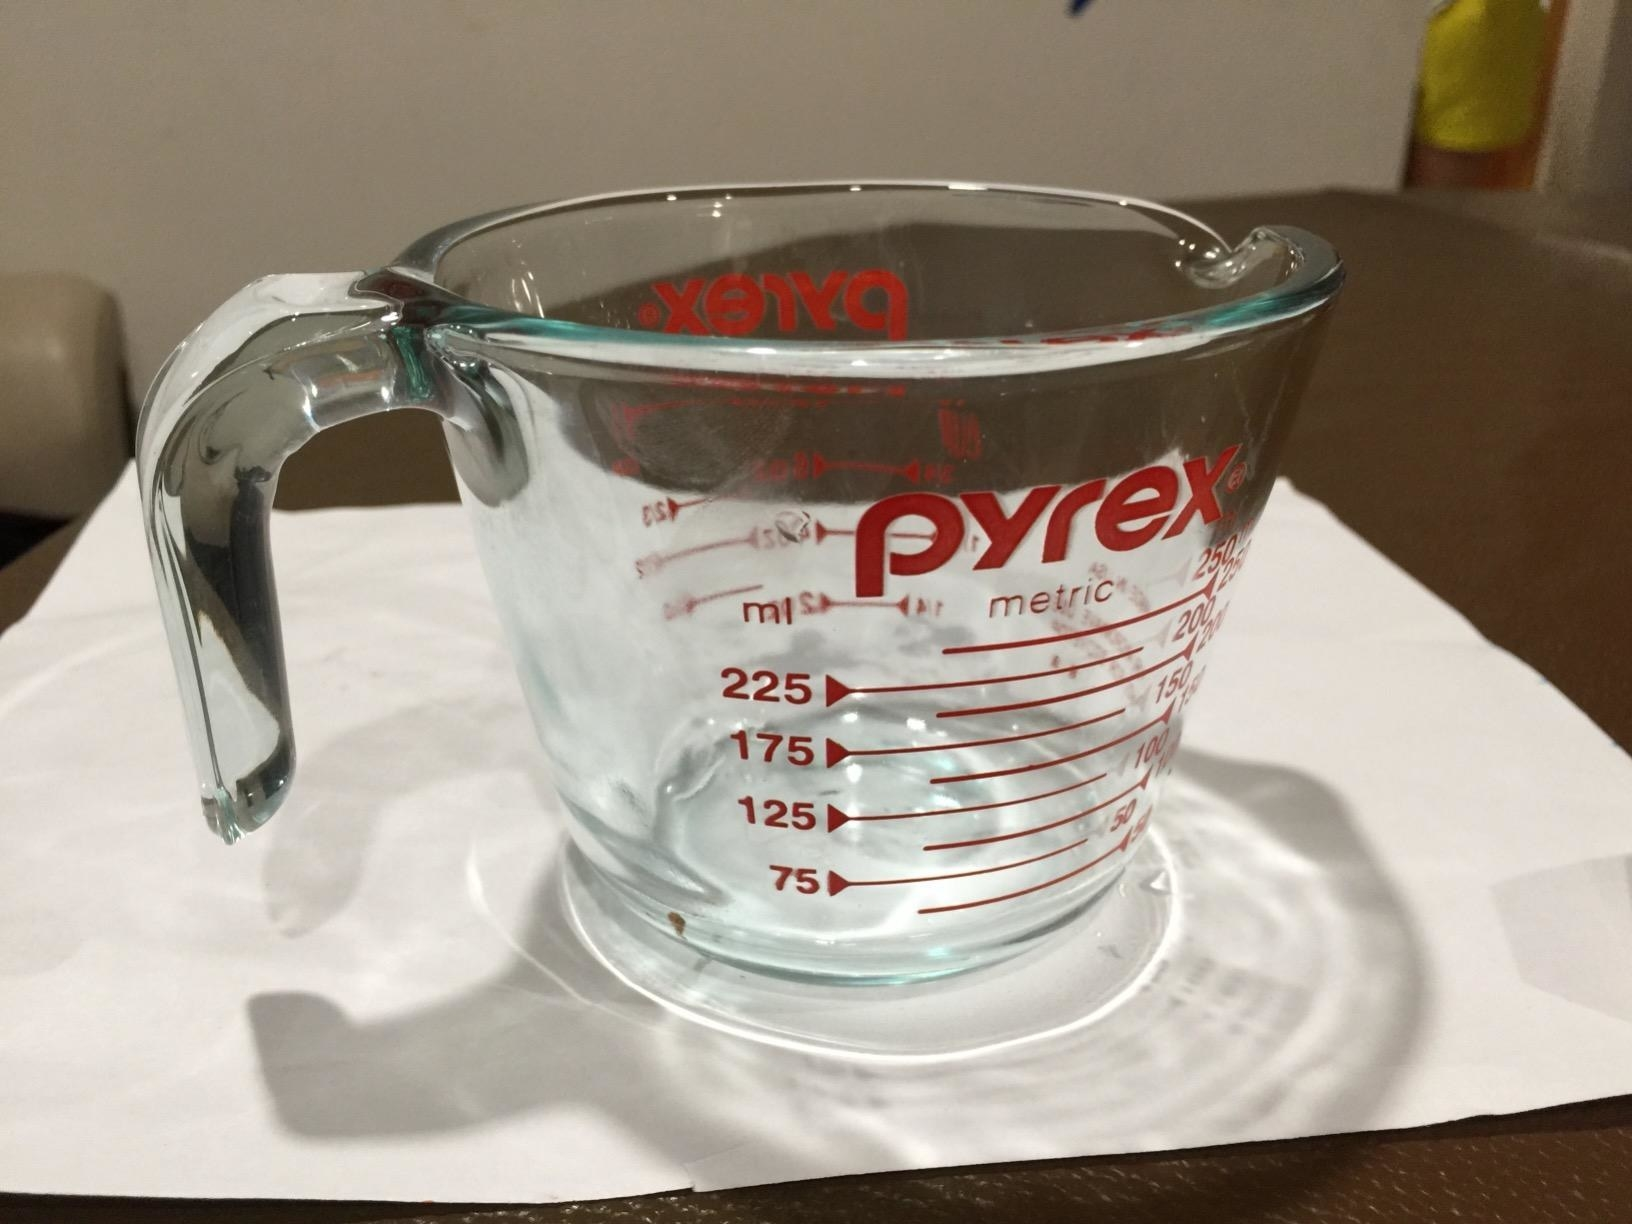 A reviewer showing the pyrex glass measuring cup, which measures up to one cup of liquid